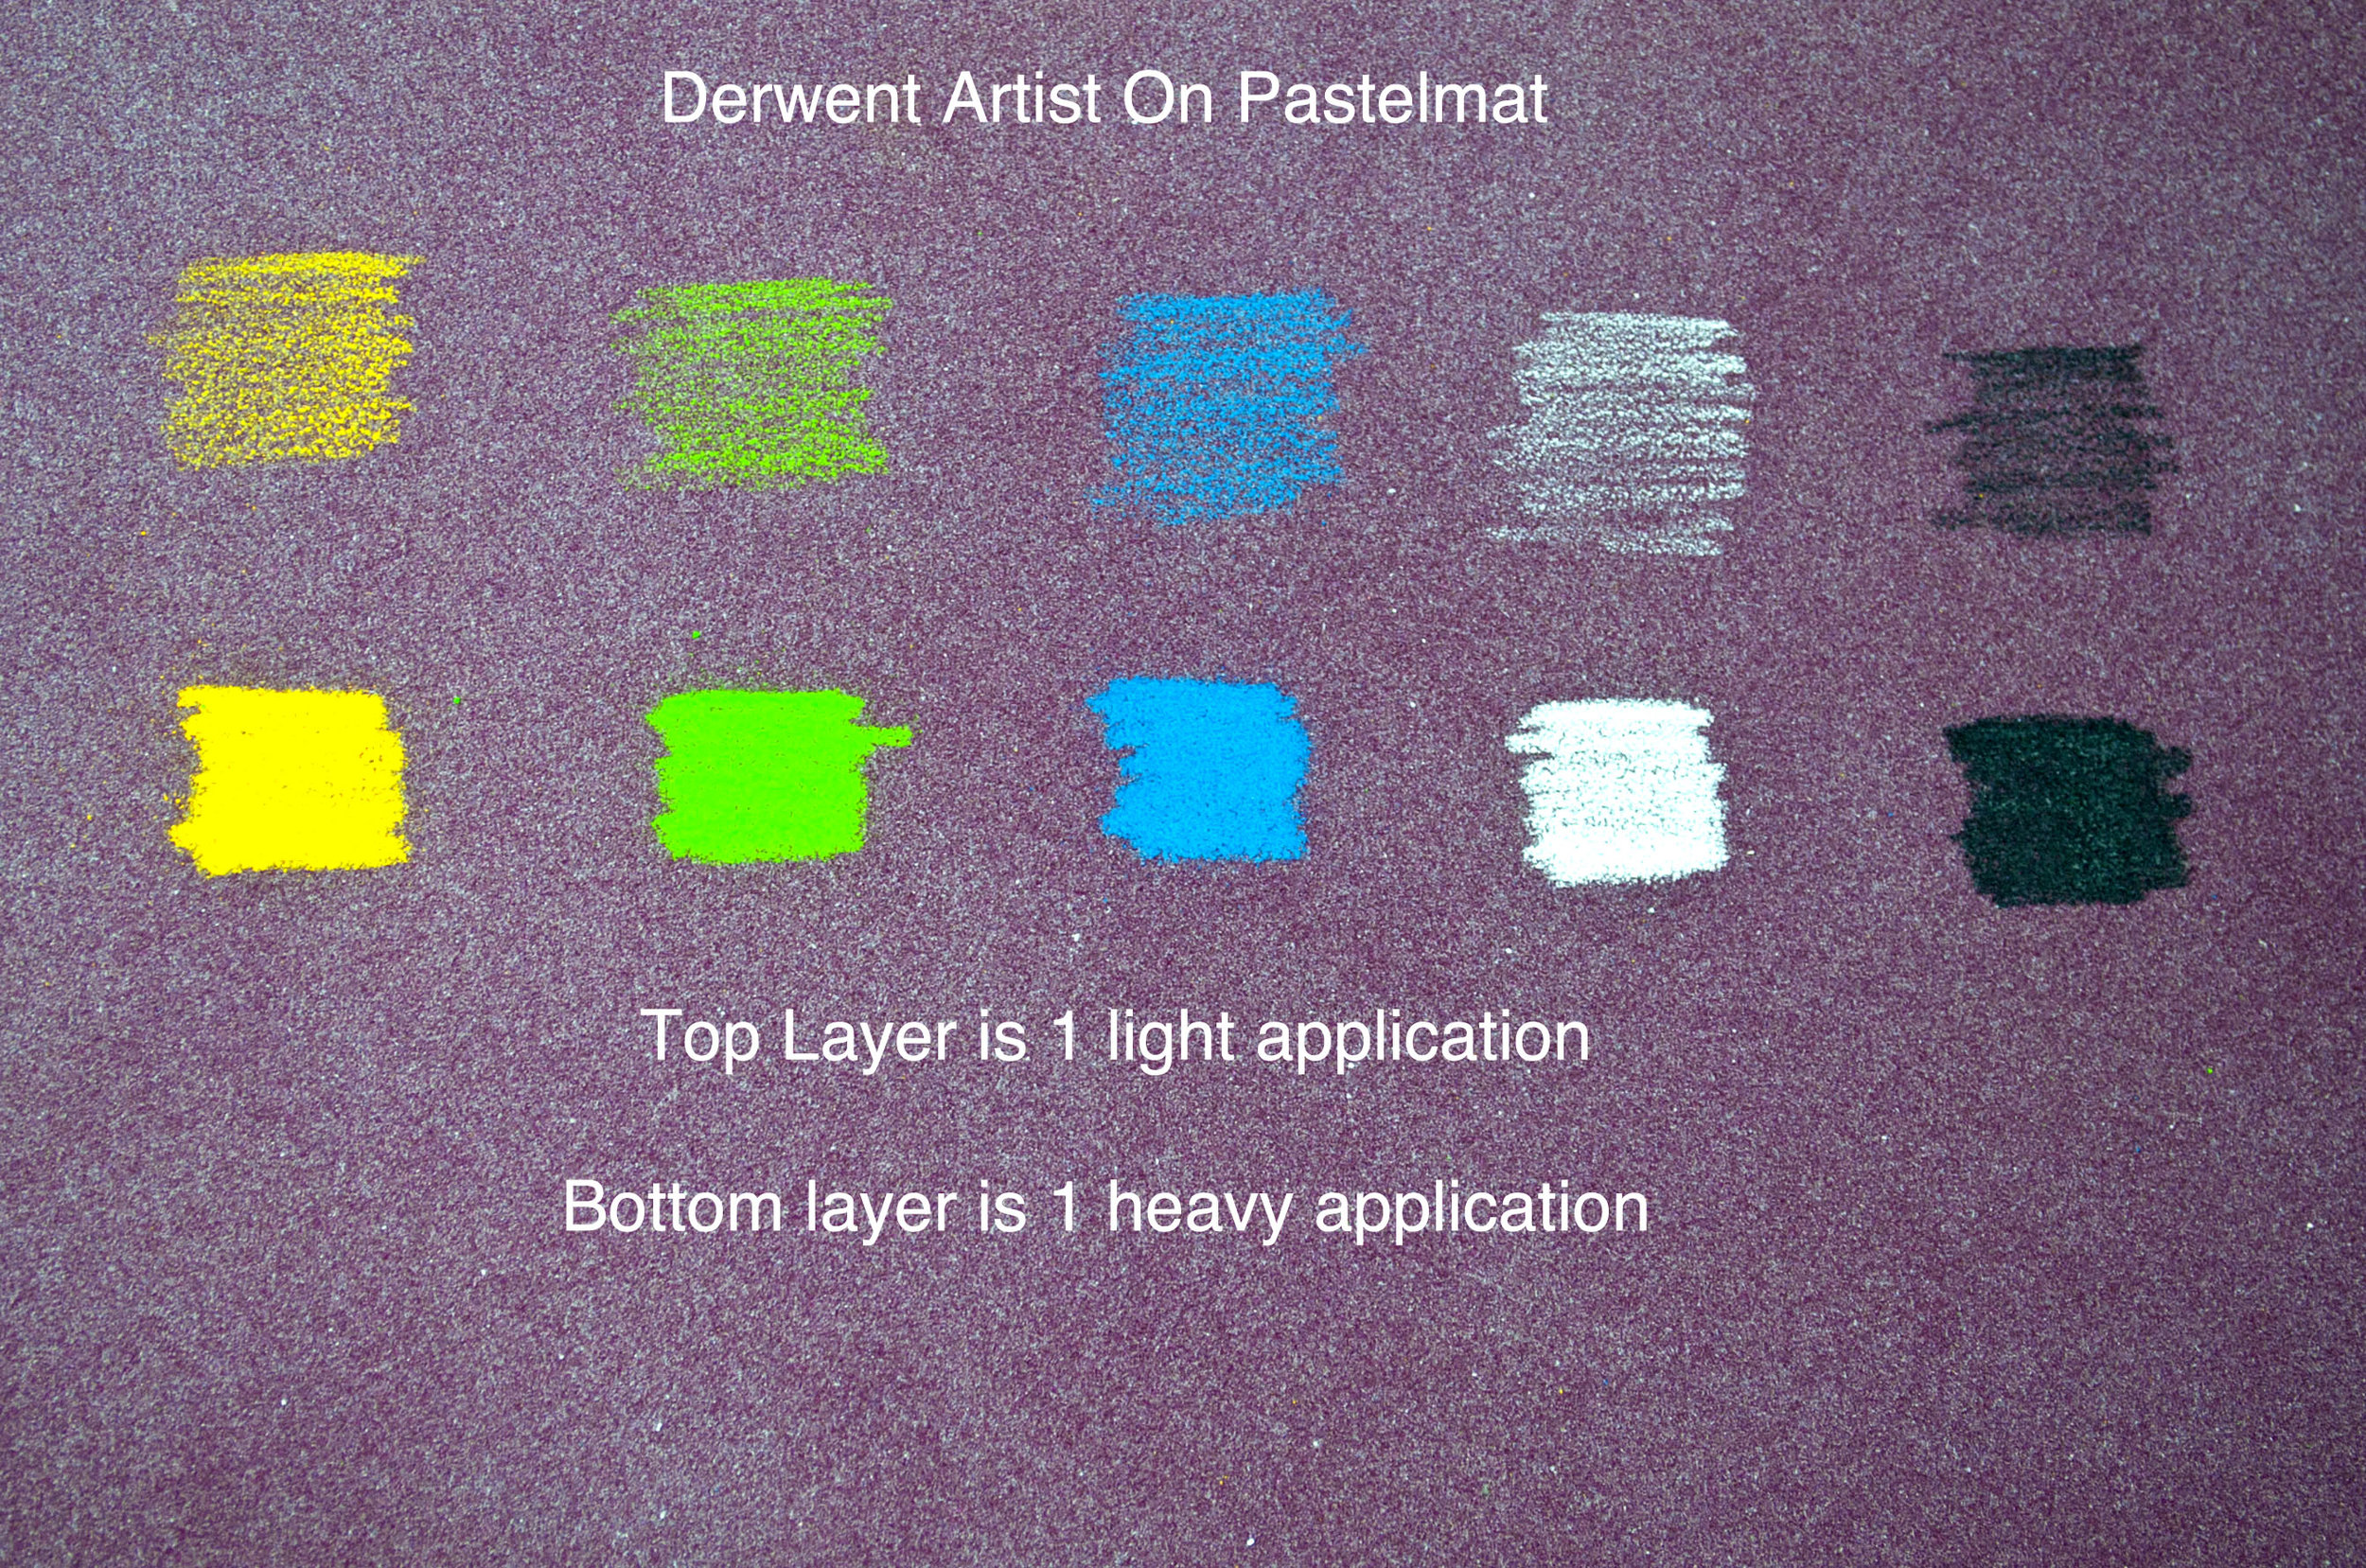 Derwent Artist on Pastelmat copy.jpg